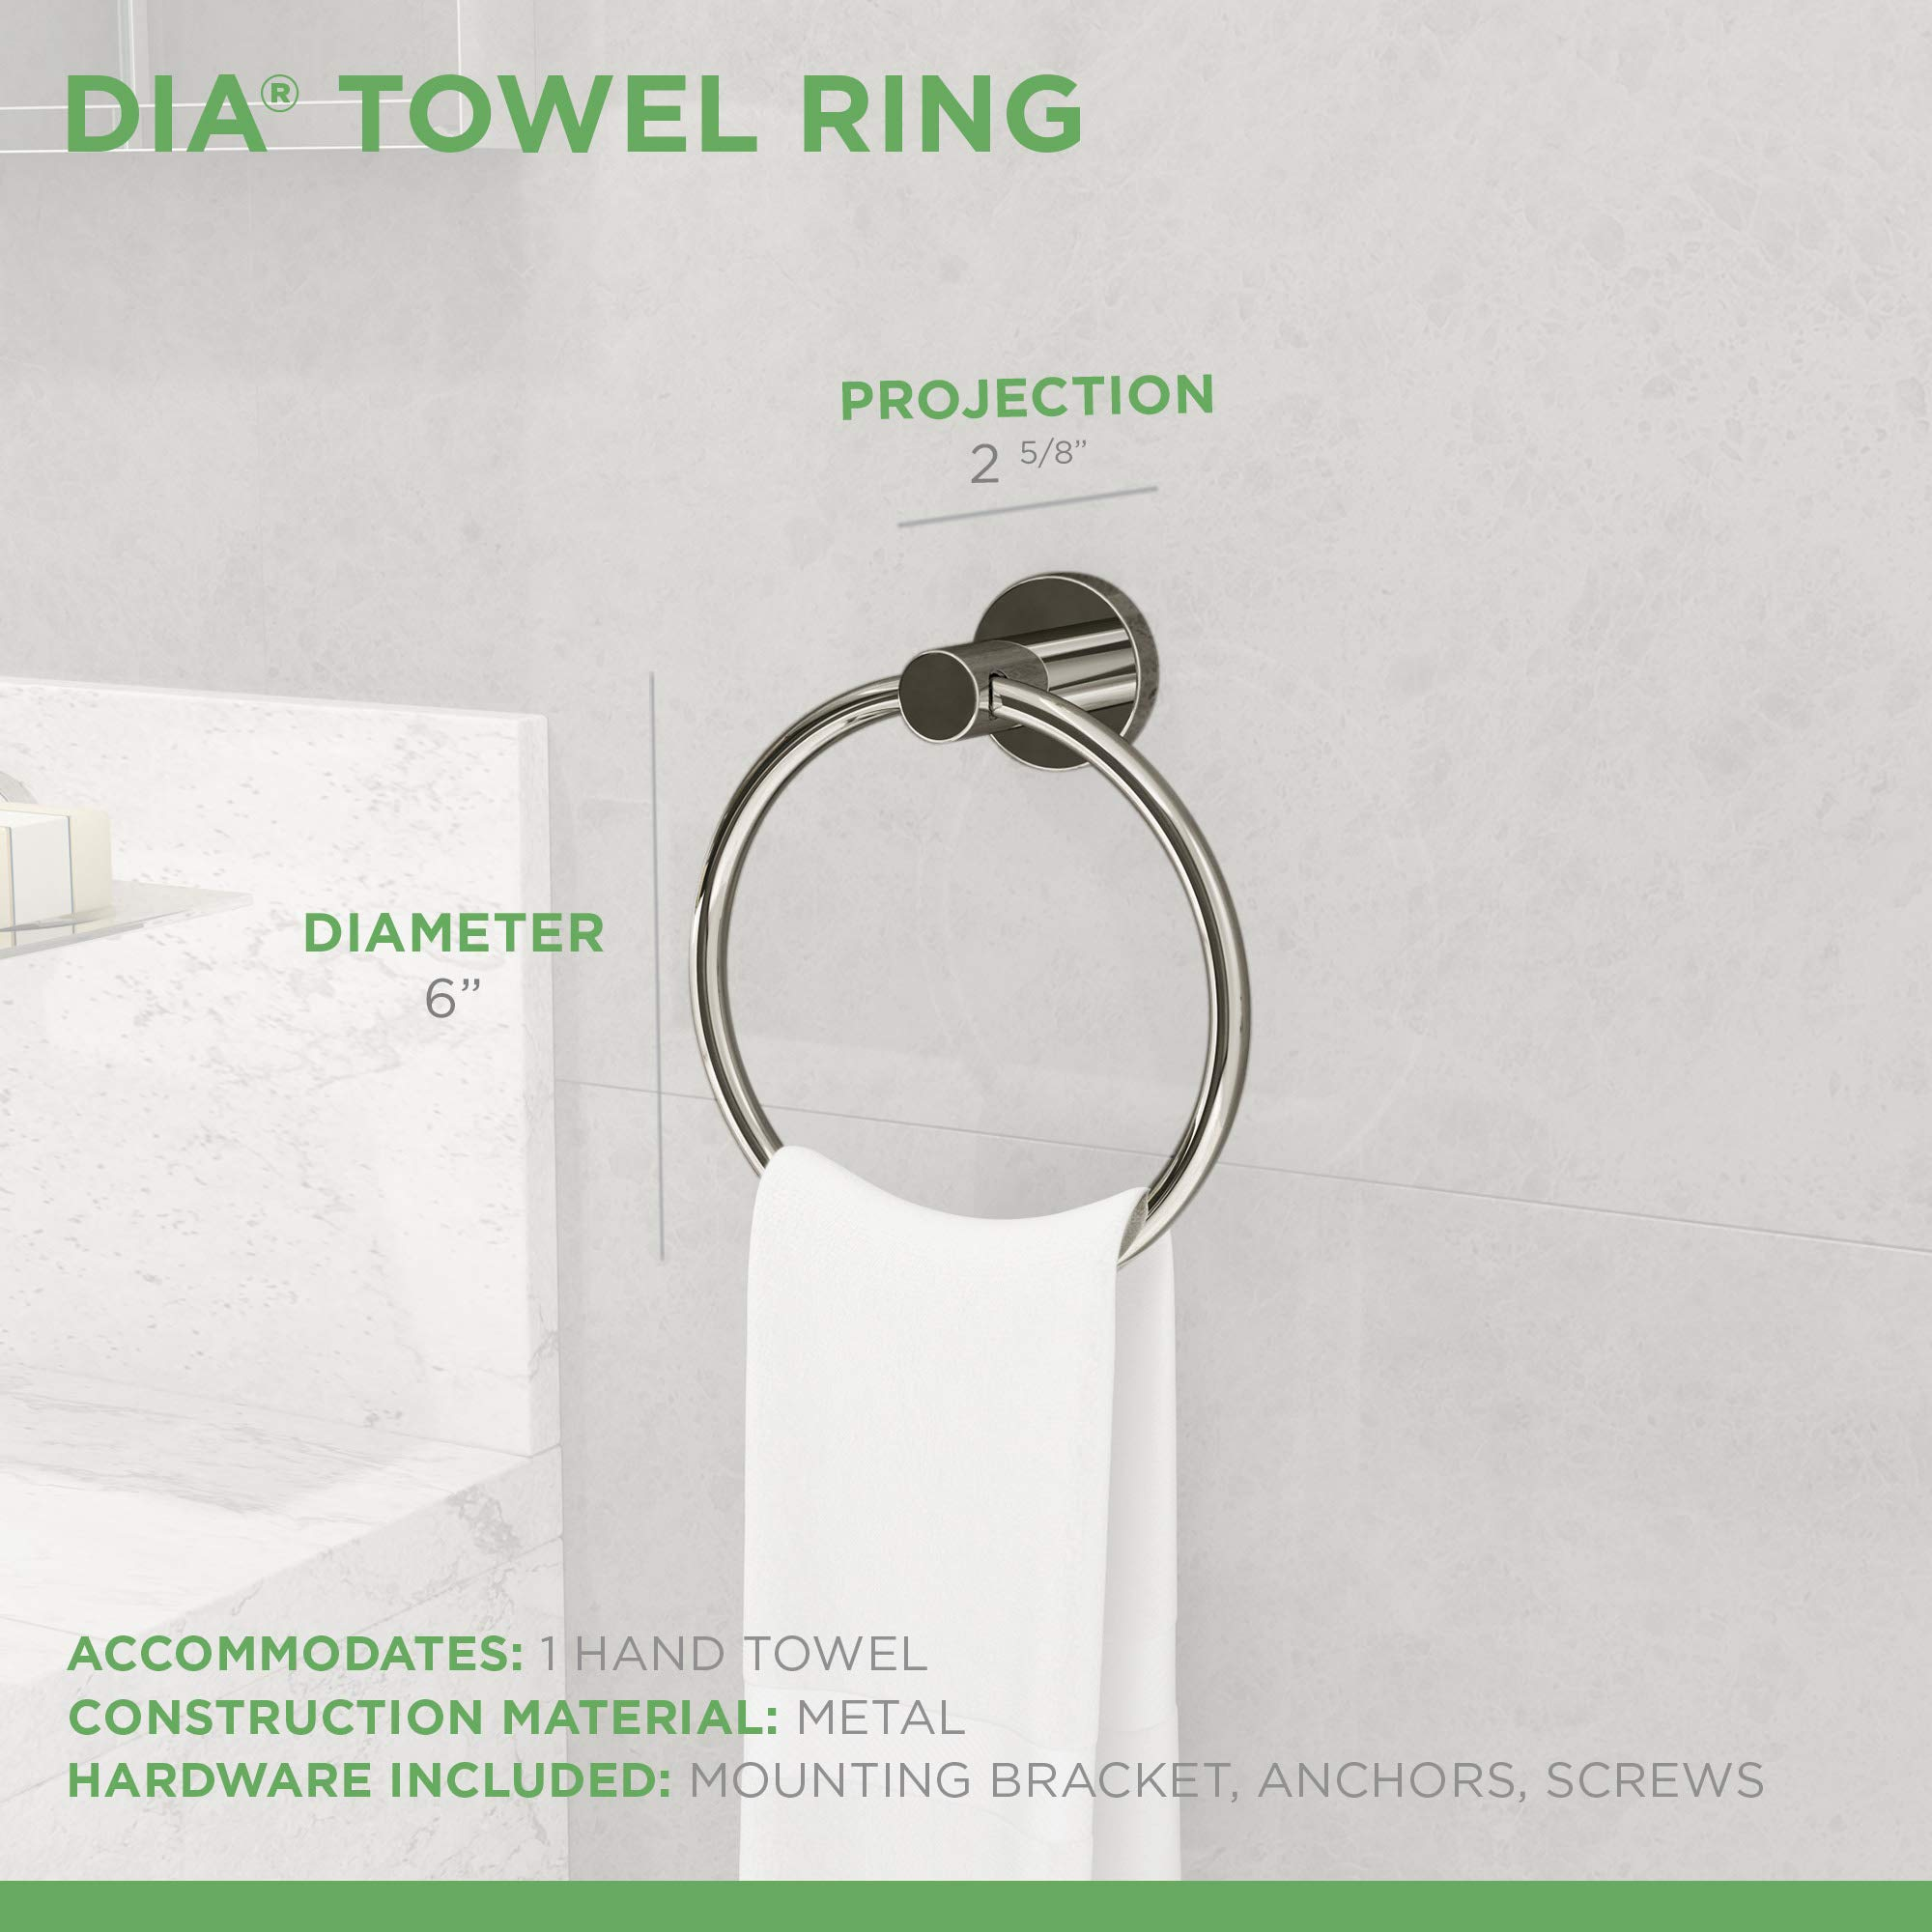 Symmons 353TR Dia Wall-Mounted Towel Ring in Polished Chrome by Symmons